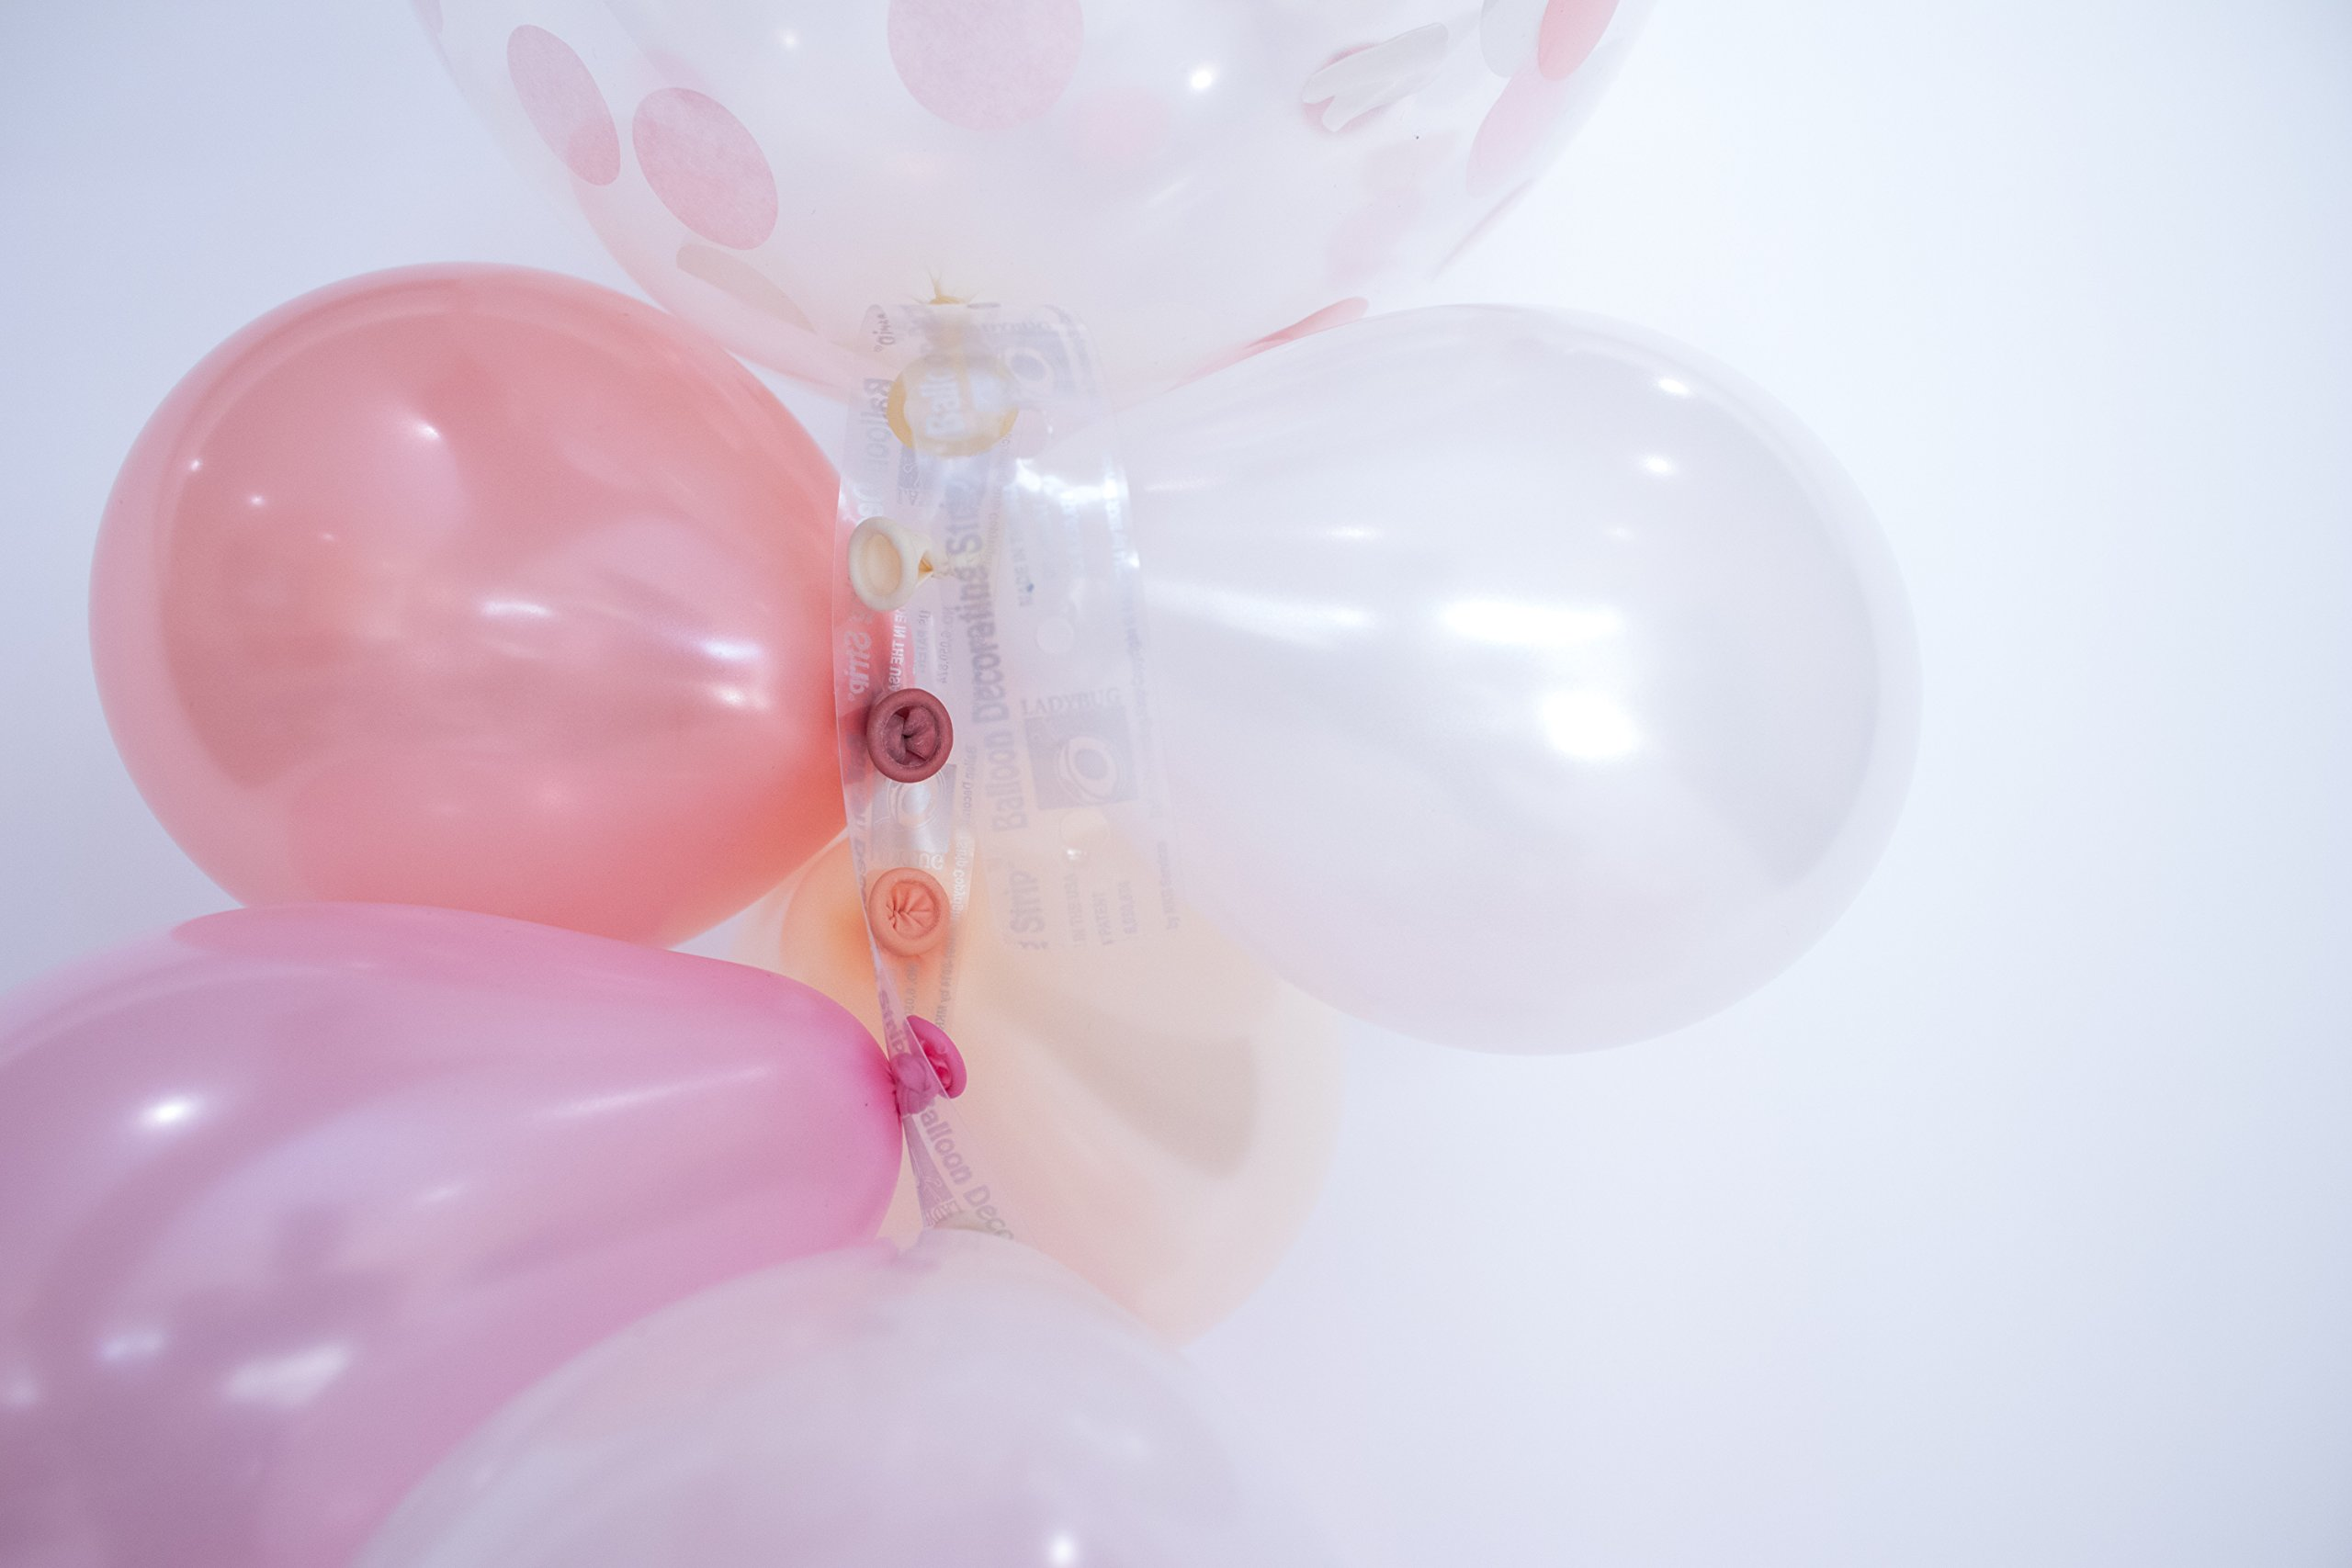 Baby Shower Decorations for Girl | Baby Girl Party Supplies| It's a Girl | Balloon Garland with 72 Balloons 11'' & 5'' Pink, Blush and Confetti with Rose Gold Baby Script Balloon (Pink)